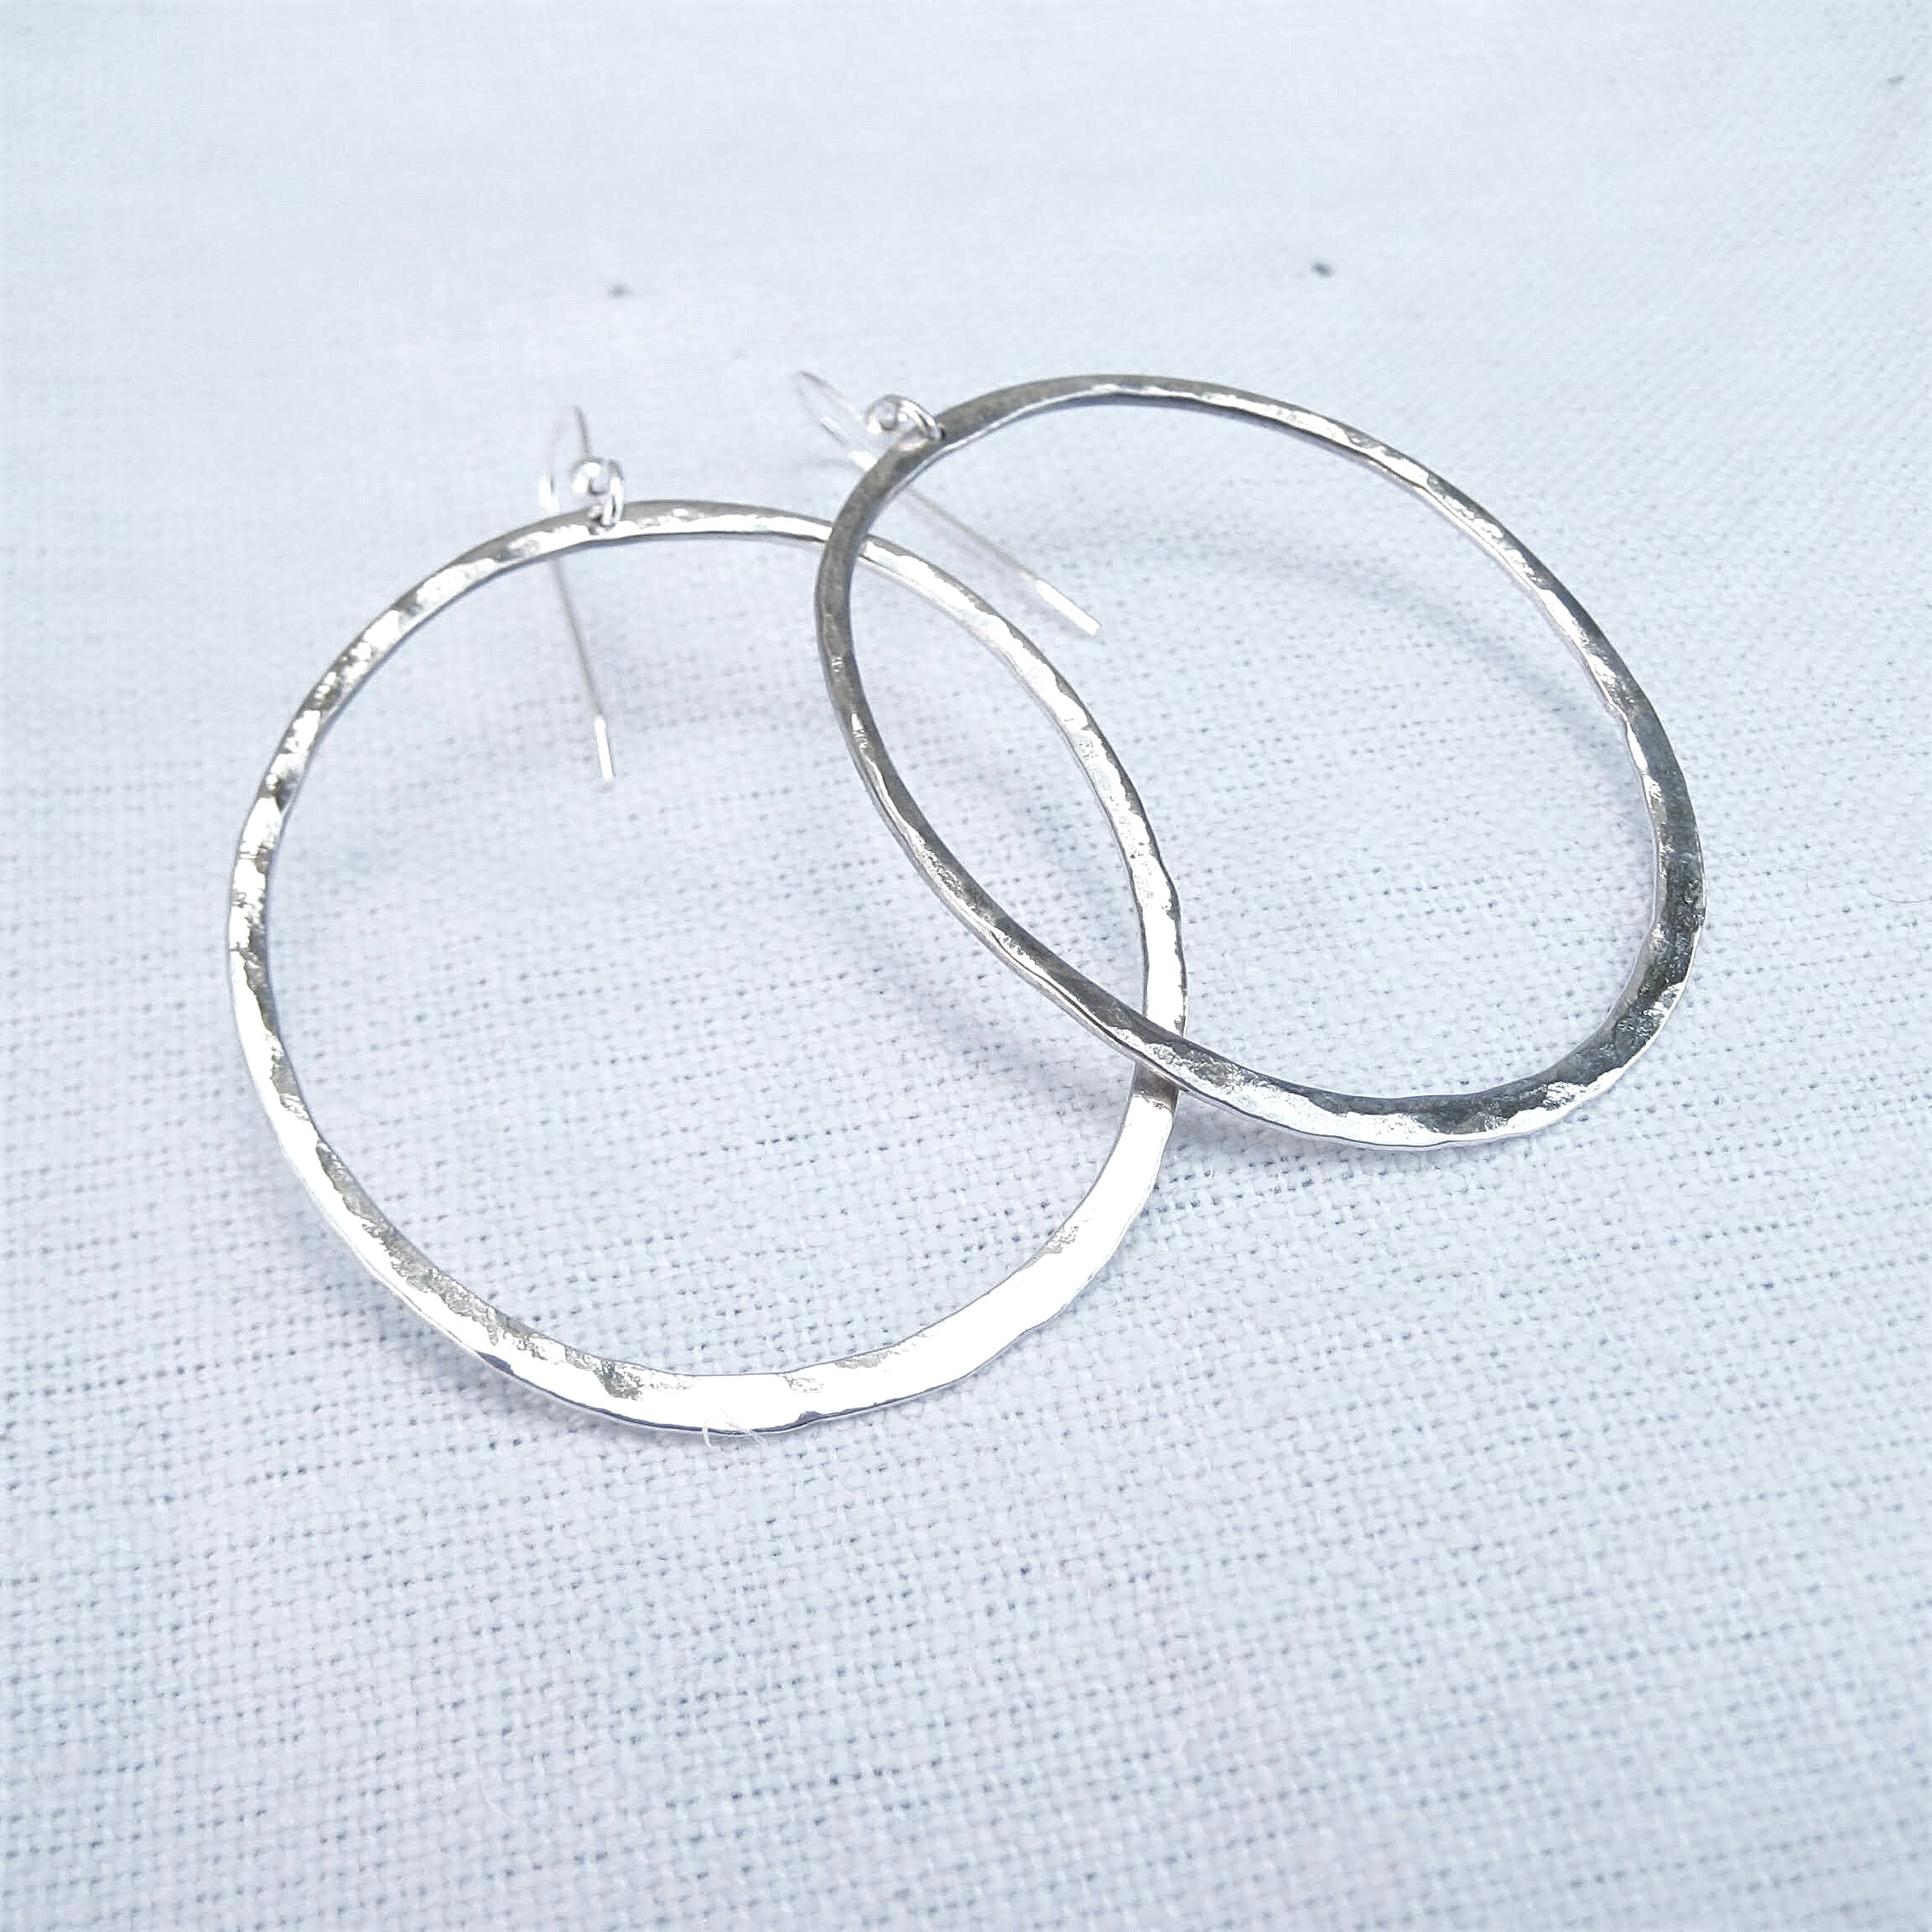 Hammered Loop earrings